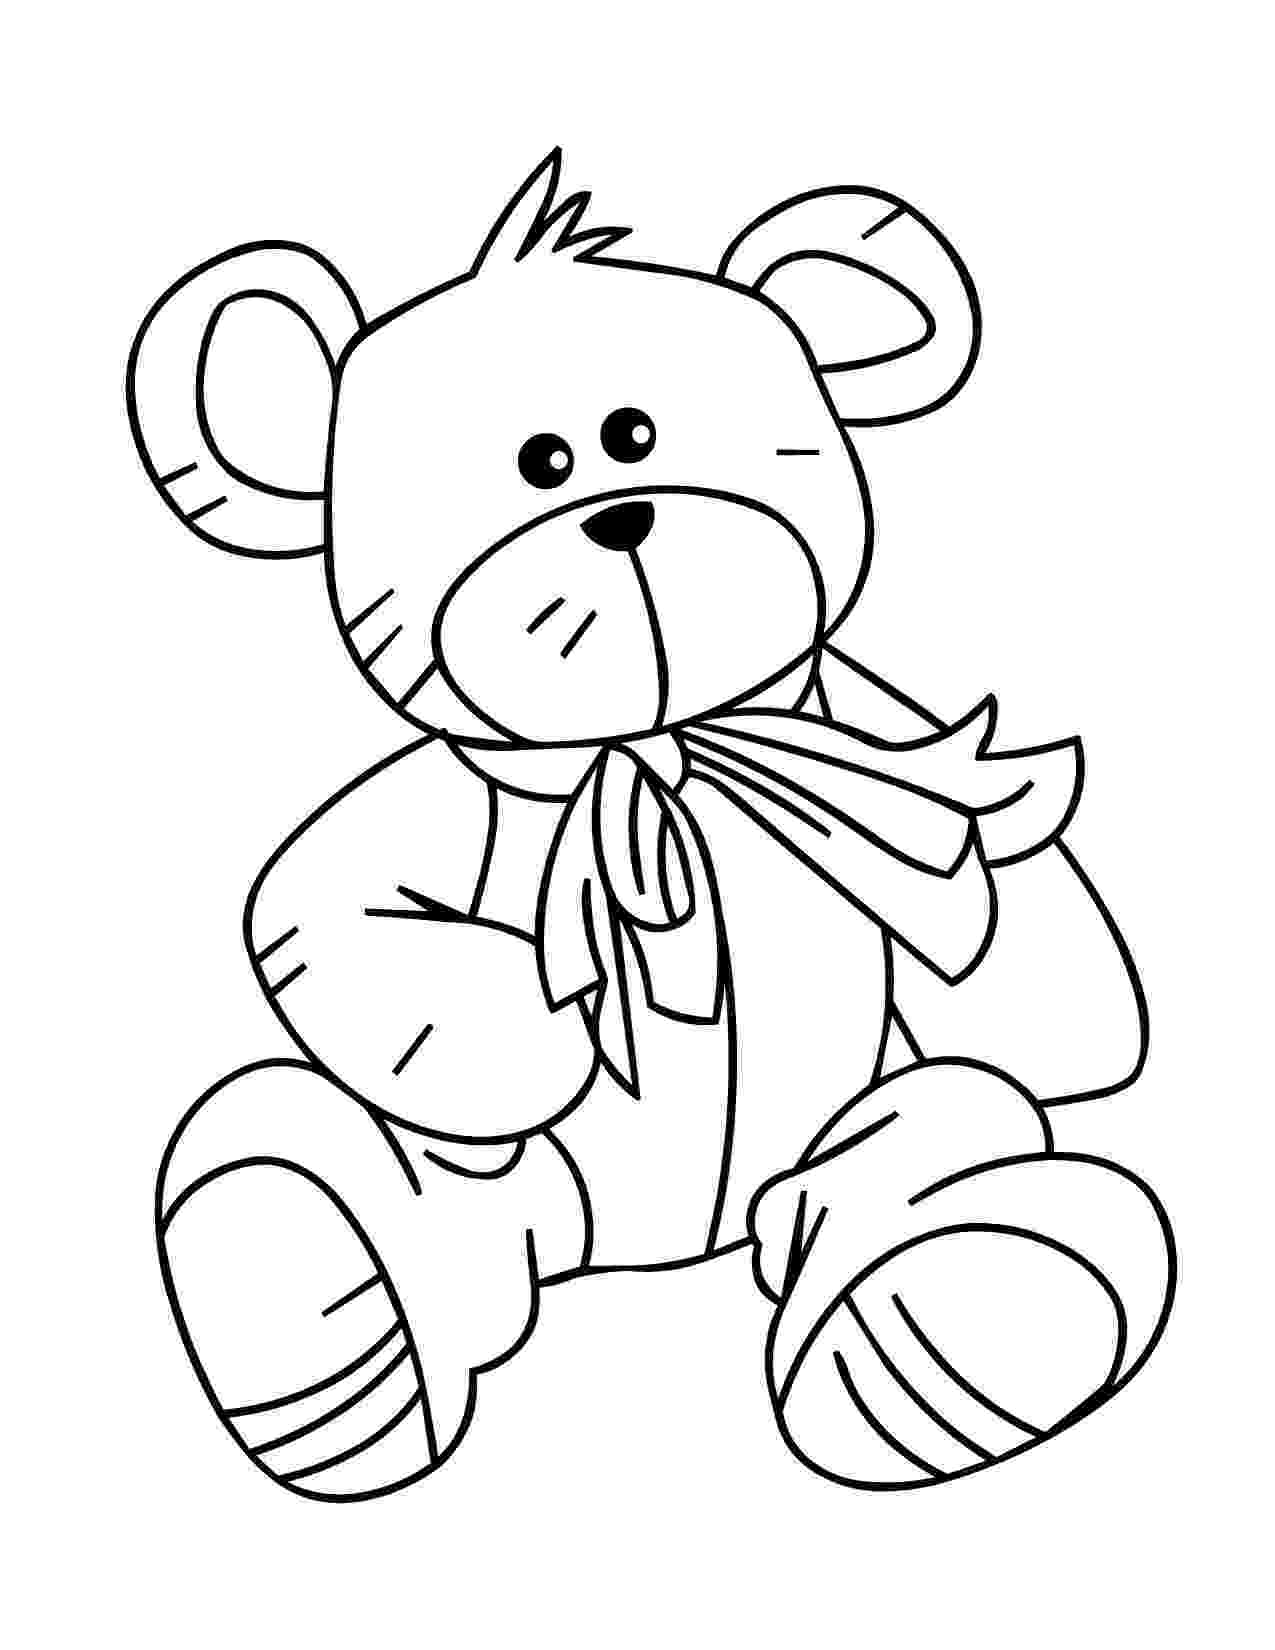 teddy bear coloring pictures free printable teddy bear coloring pages for kids teddy bear pictures coloring 1 1